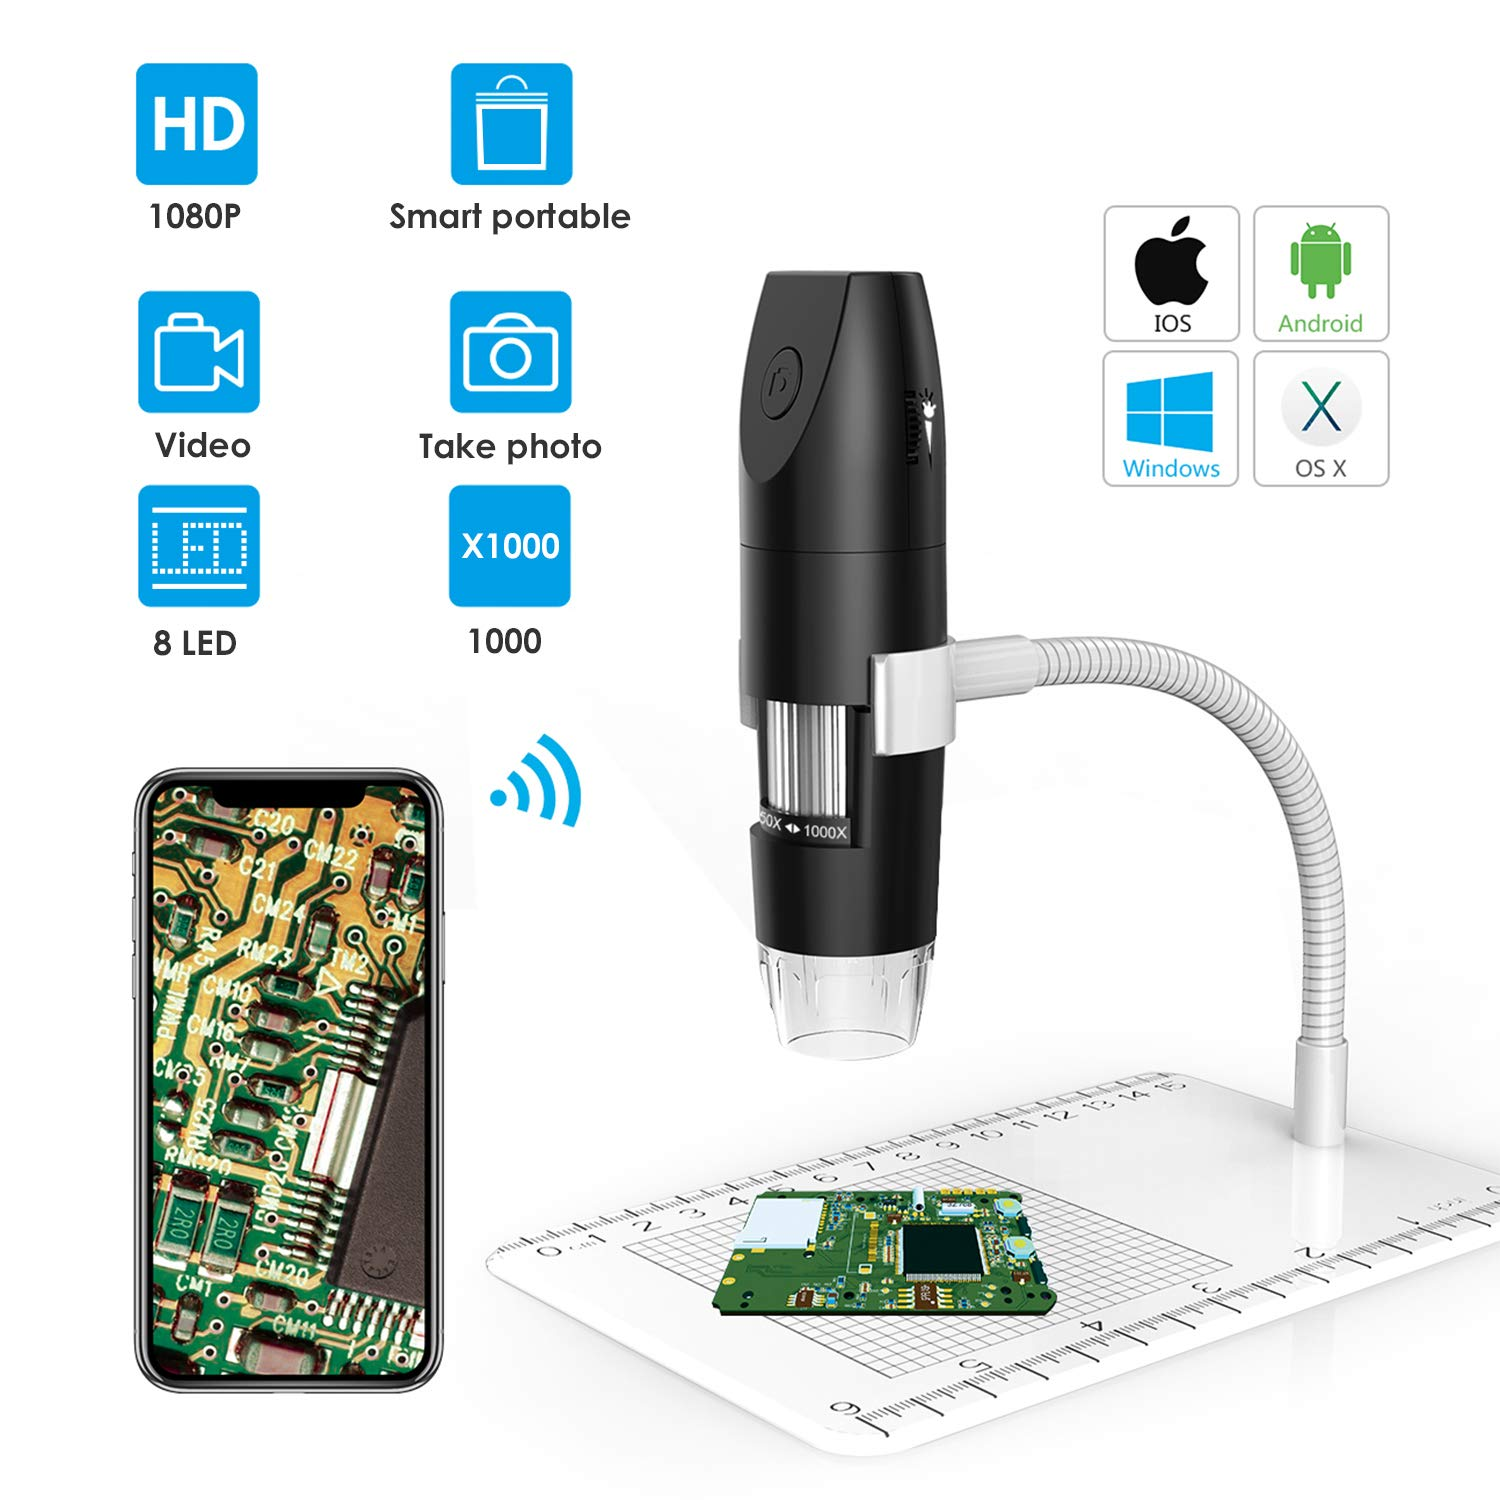 HD WiFi Wireless Digital Microscope 1080P 8 Pancellent Adjustable LED Lights 1080P Wi-Fi Endscope 50X to 1000X USB Handheld Camera with Metal Stand, Compatible with iPhone, iPad, Android Smartphone, M